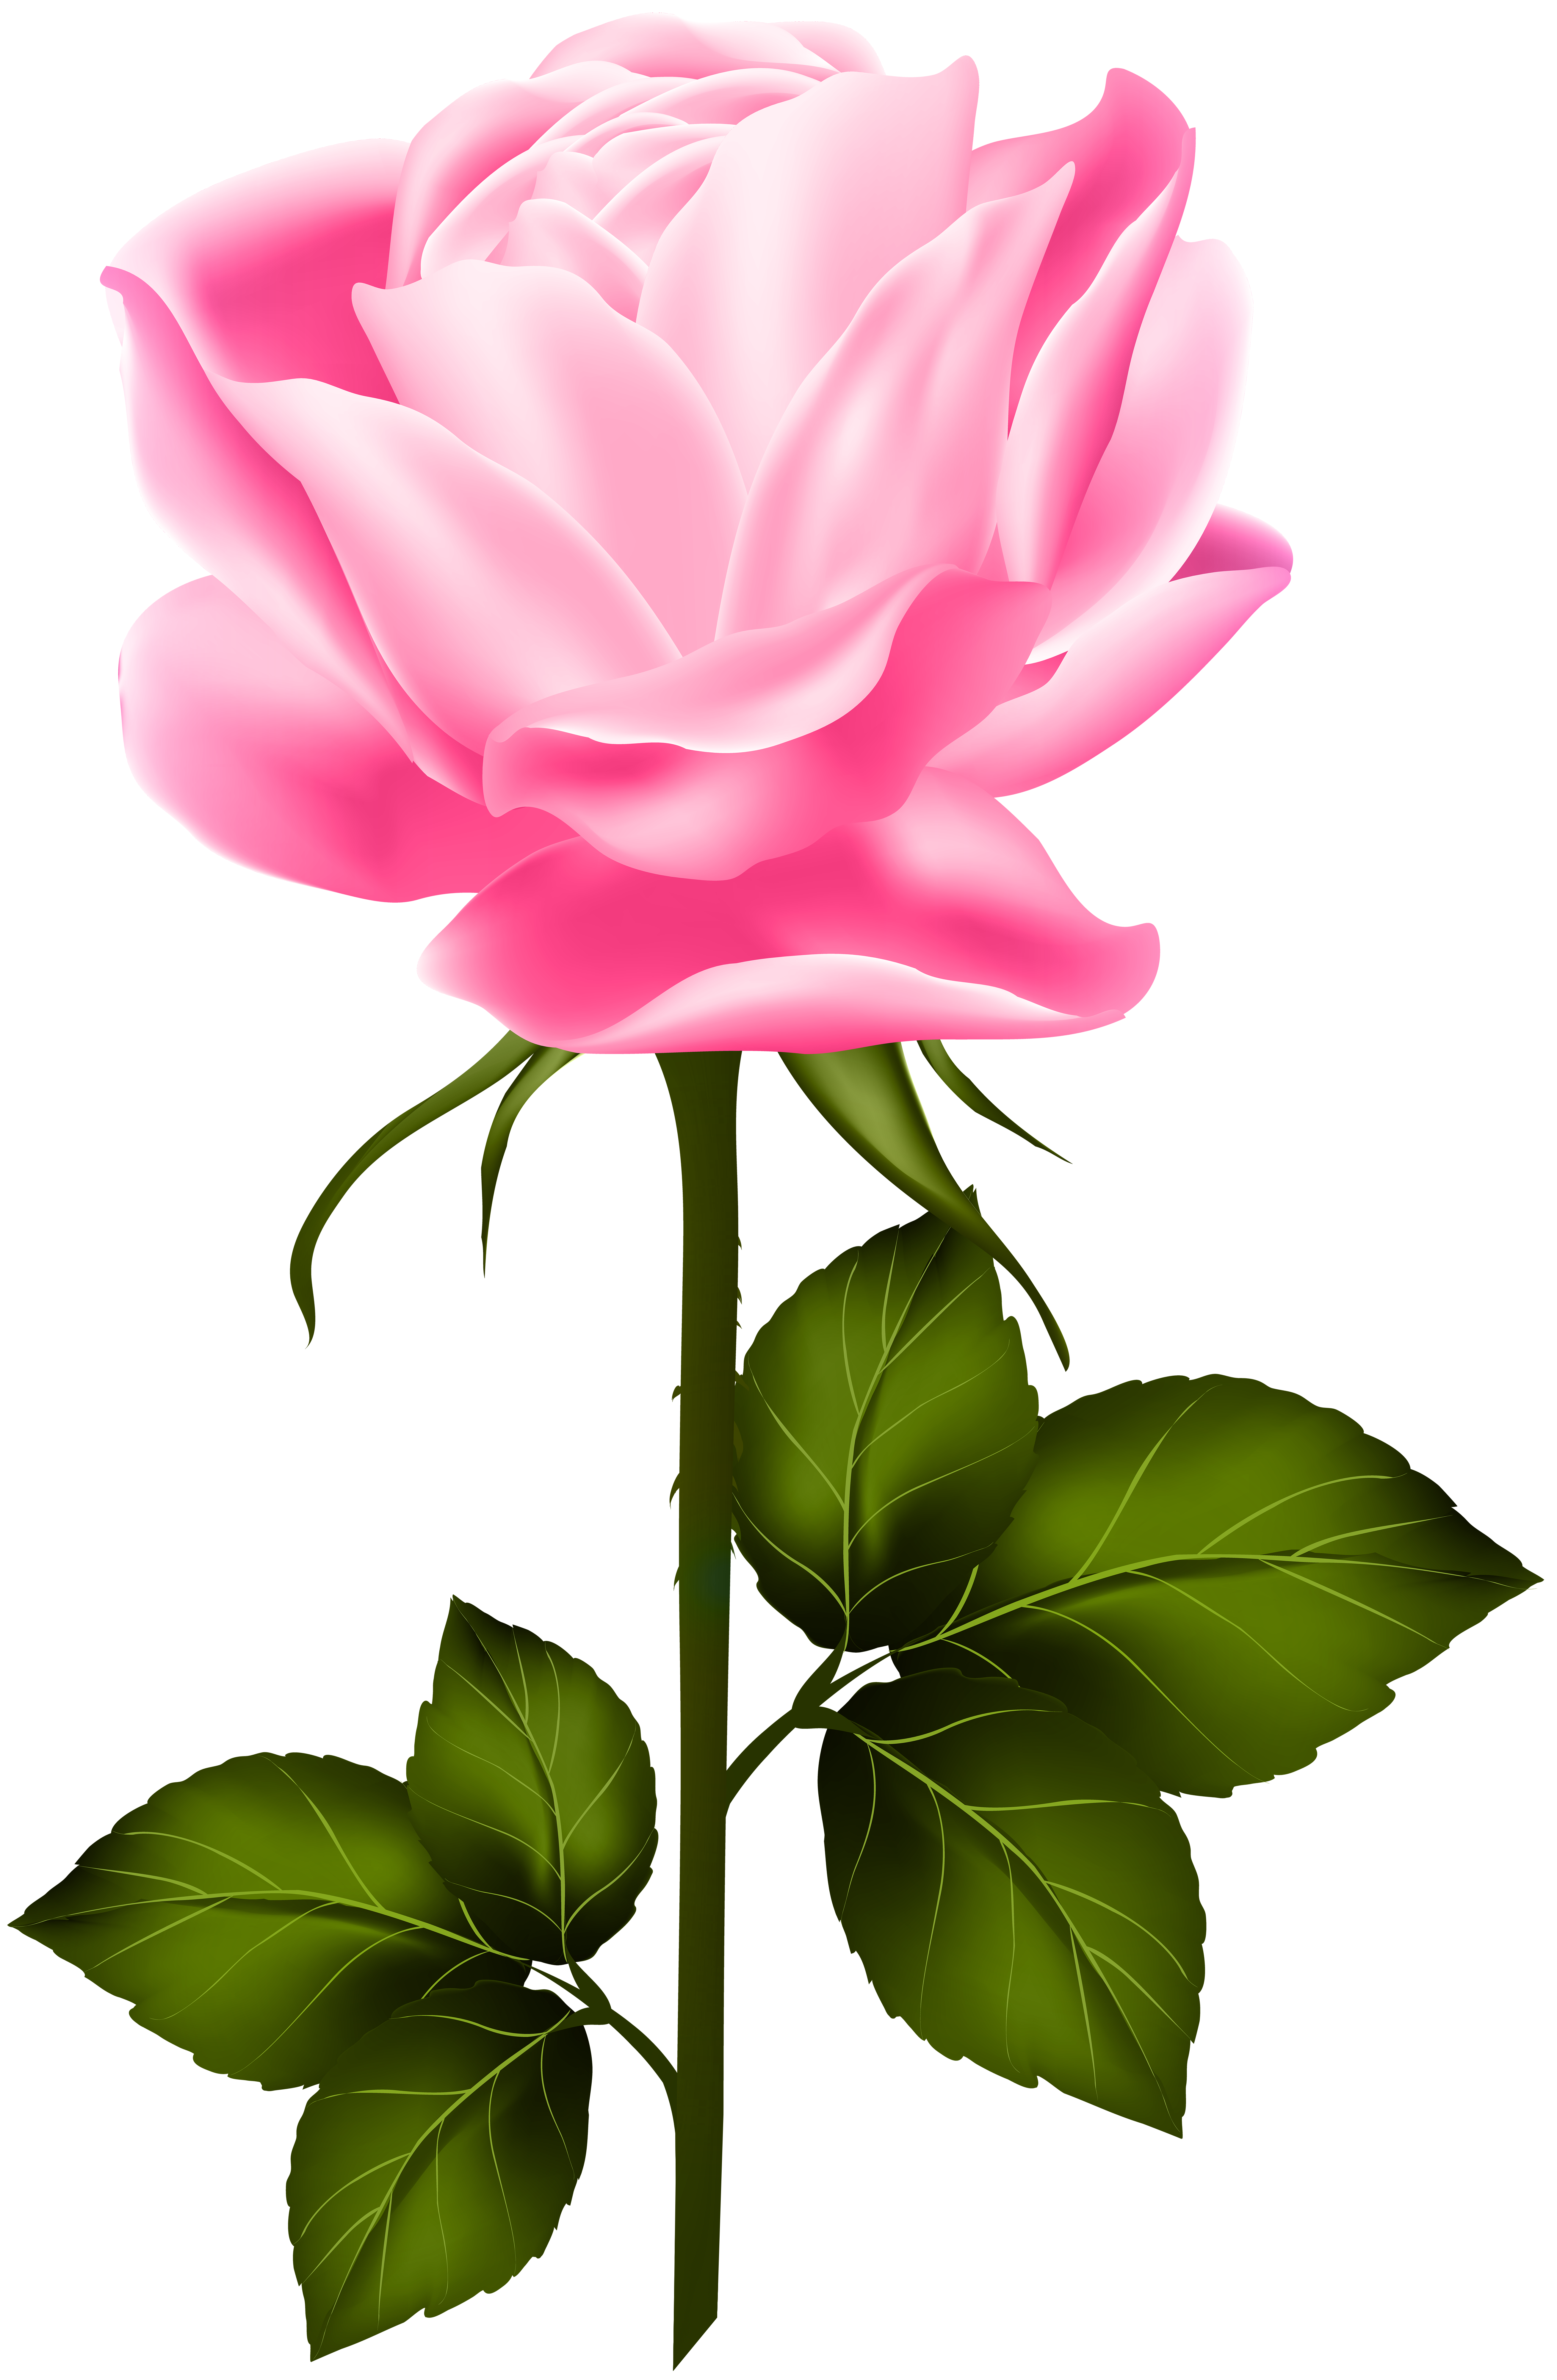 Pink flower with stem clipart clipart library library Pink Rose with Stem PNG Clip Art | Gallery Yopriceville - High ... clipart library library